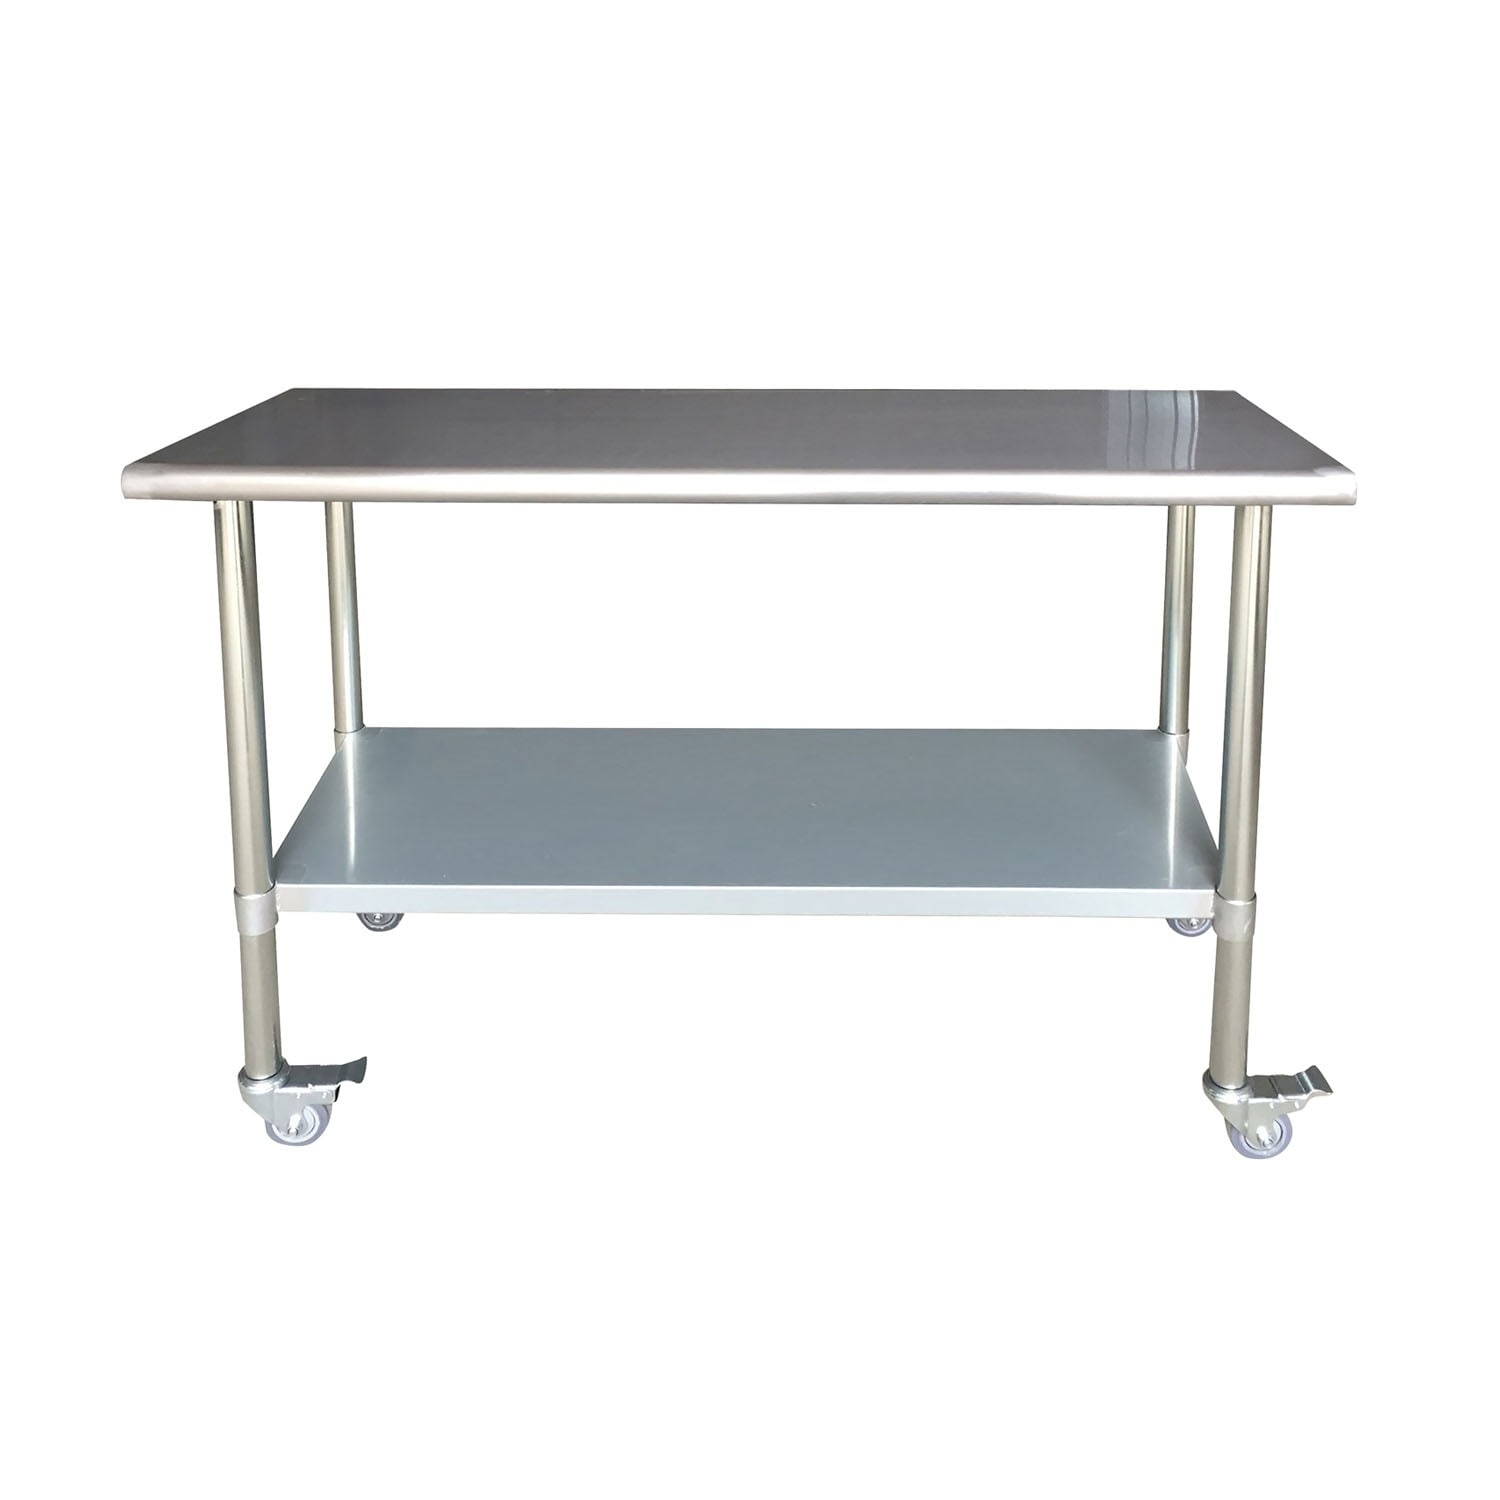 Shop Offex Series Stainless Steel Work Table With Casters X - Stainless steel work table with casters